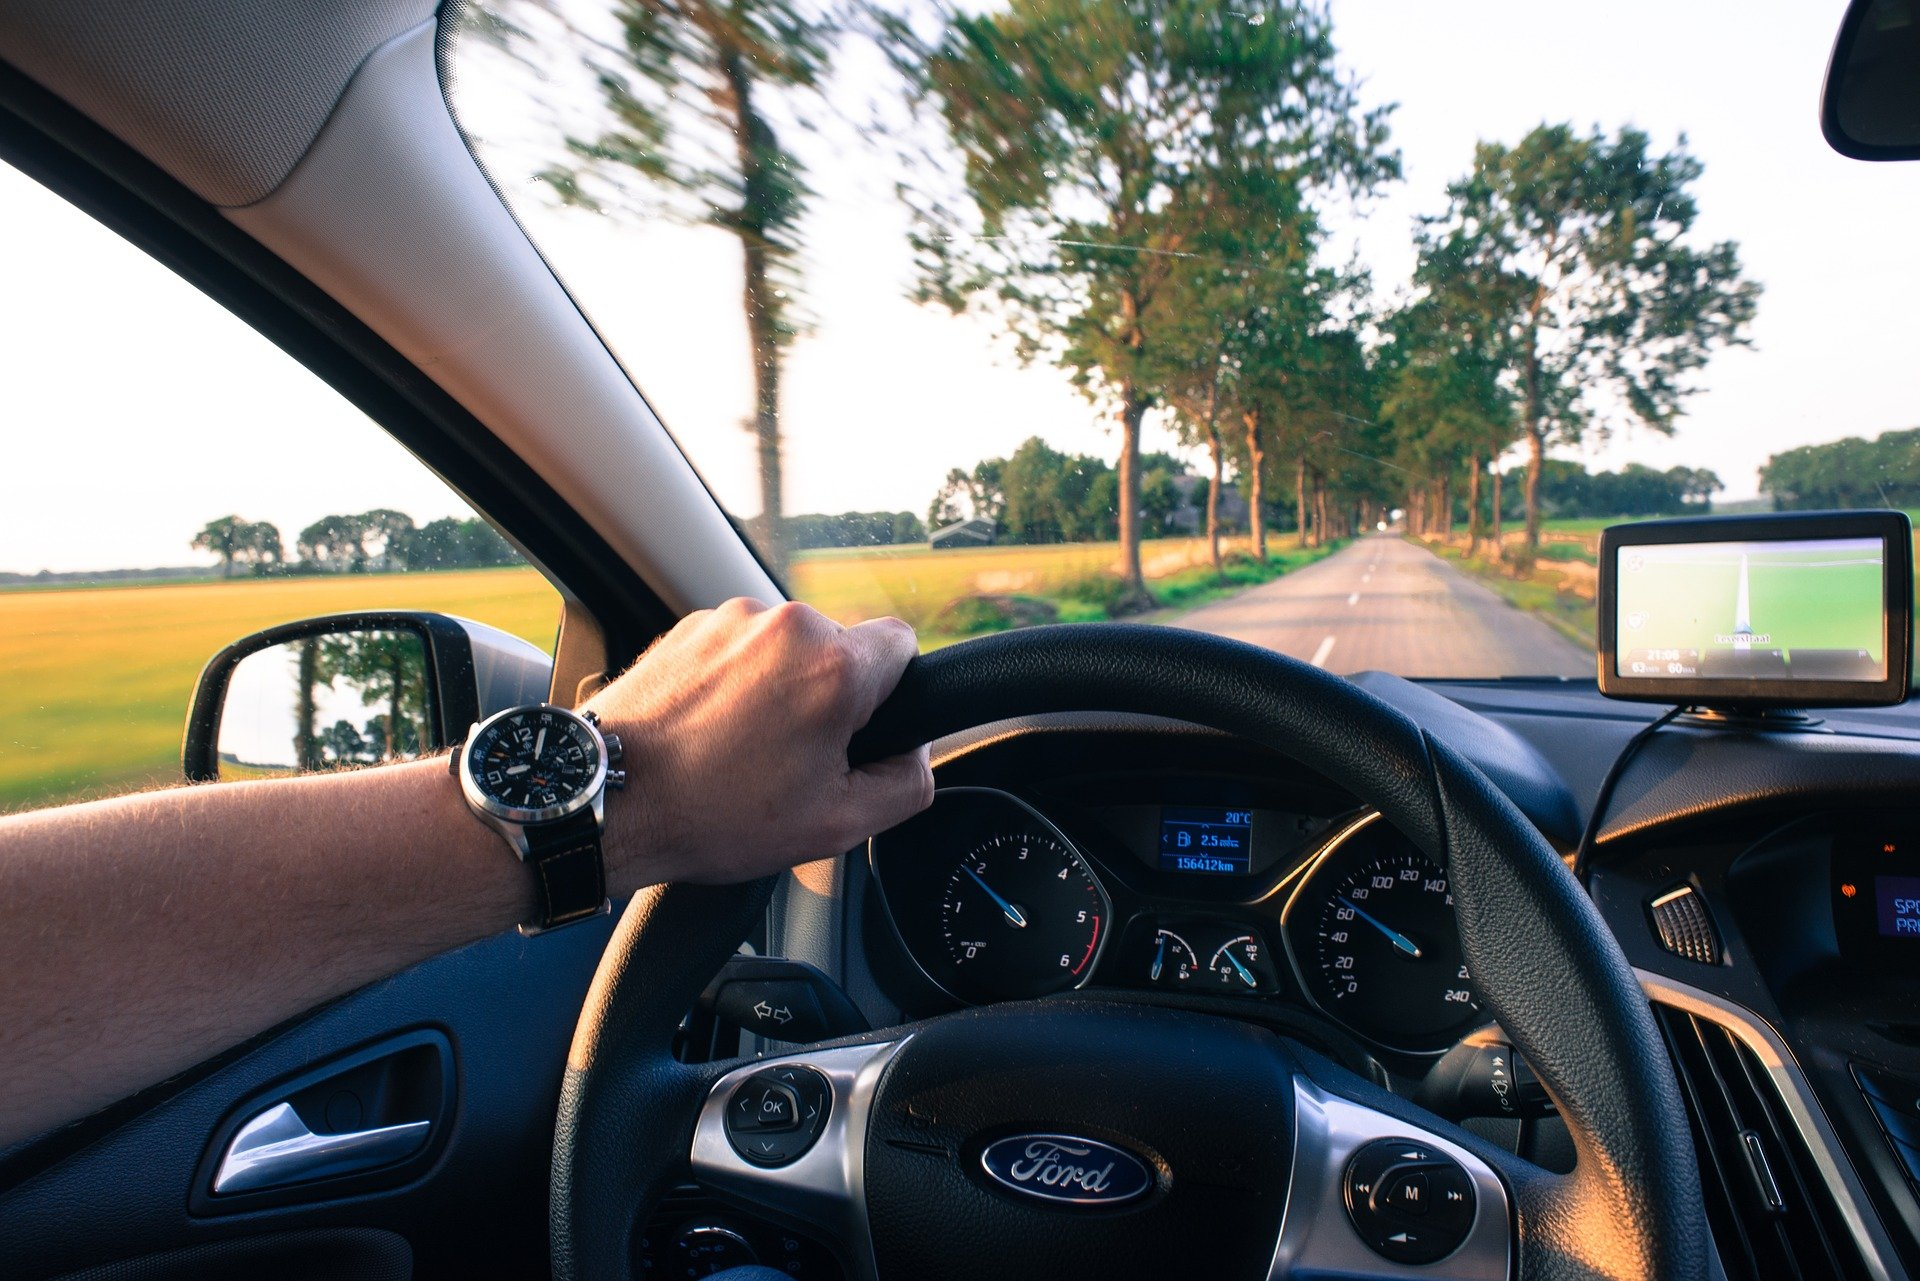 Pictured - A man driving using the navigation system   Source: Pixabay